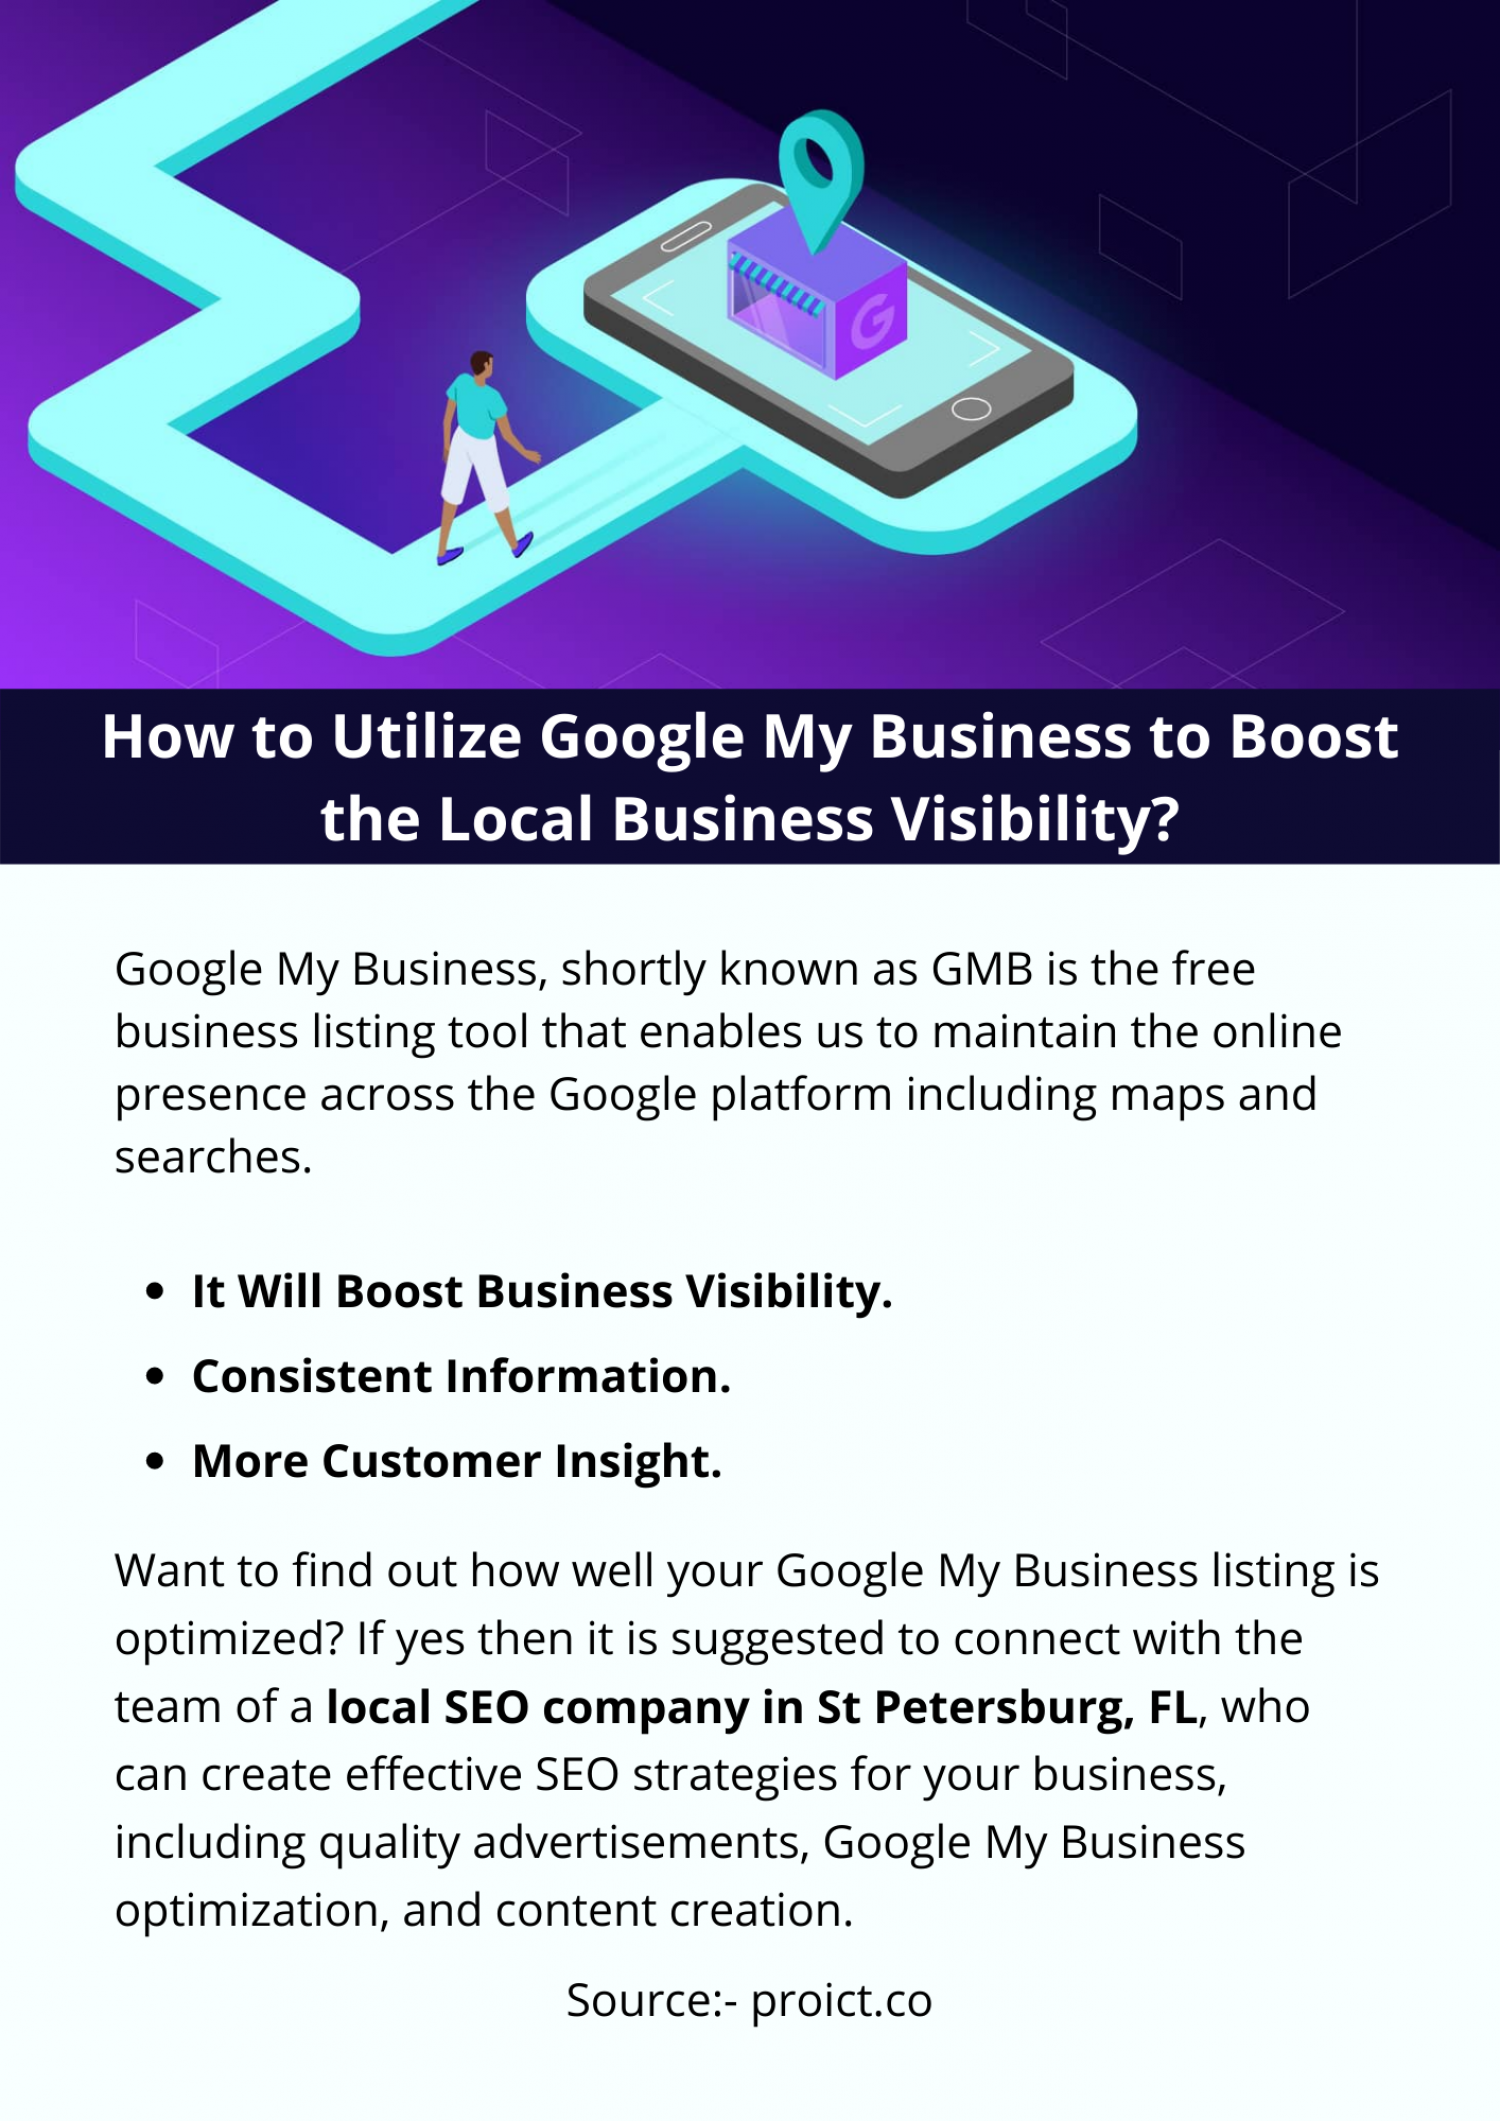 How to Utilize Google My Business to Boost the Local Business Visibility? Infographic